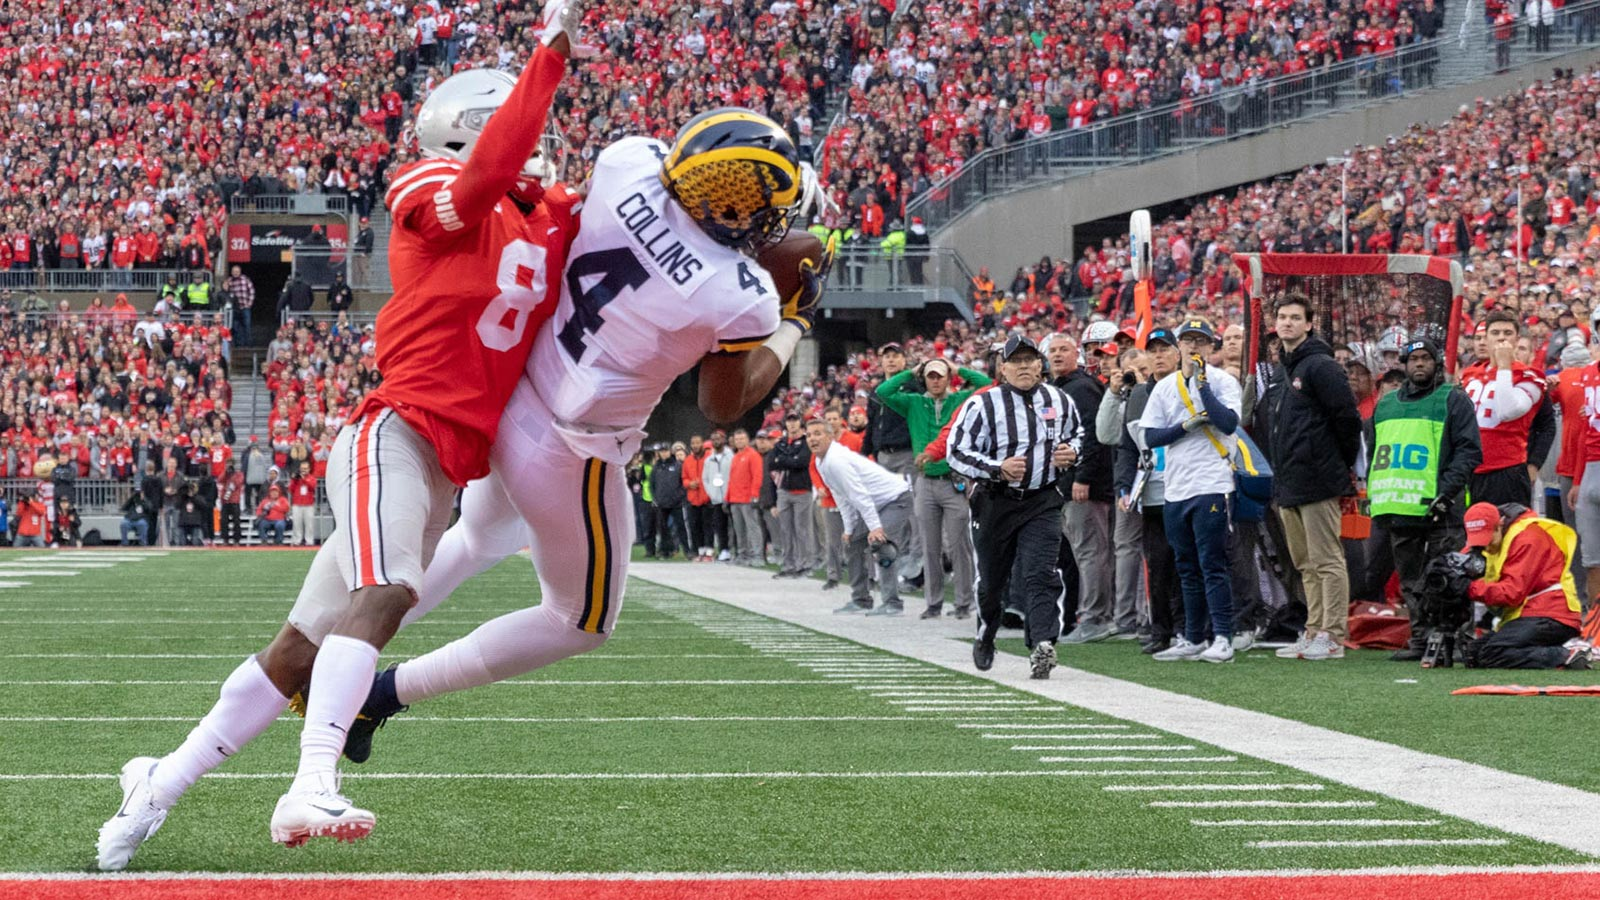 Ohio State Score Michigan Suffers Costly Loss At Ohio State In B1g East Showdown